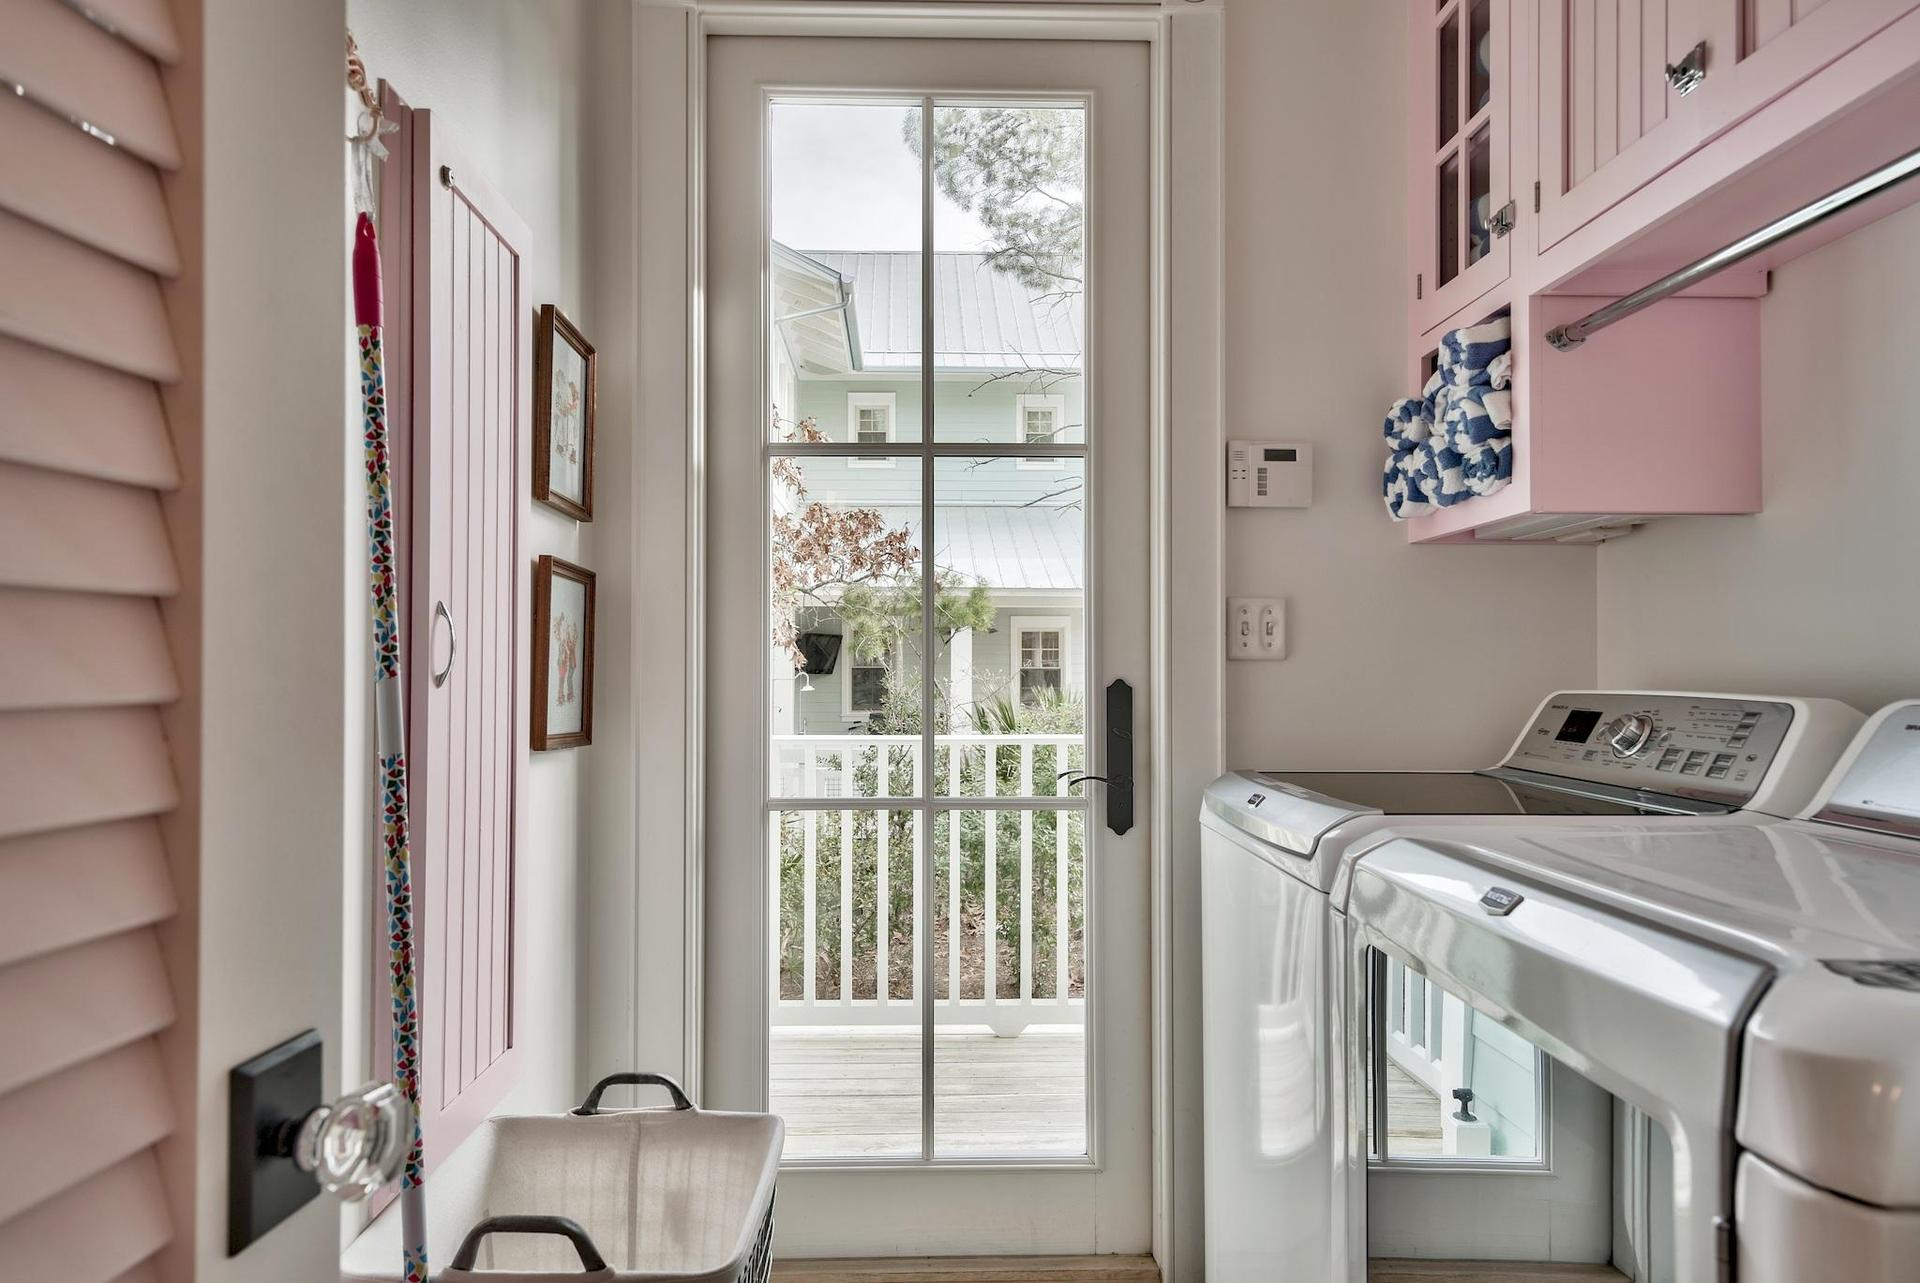 Laundry room with easy access from the outside